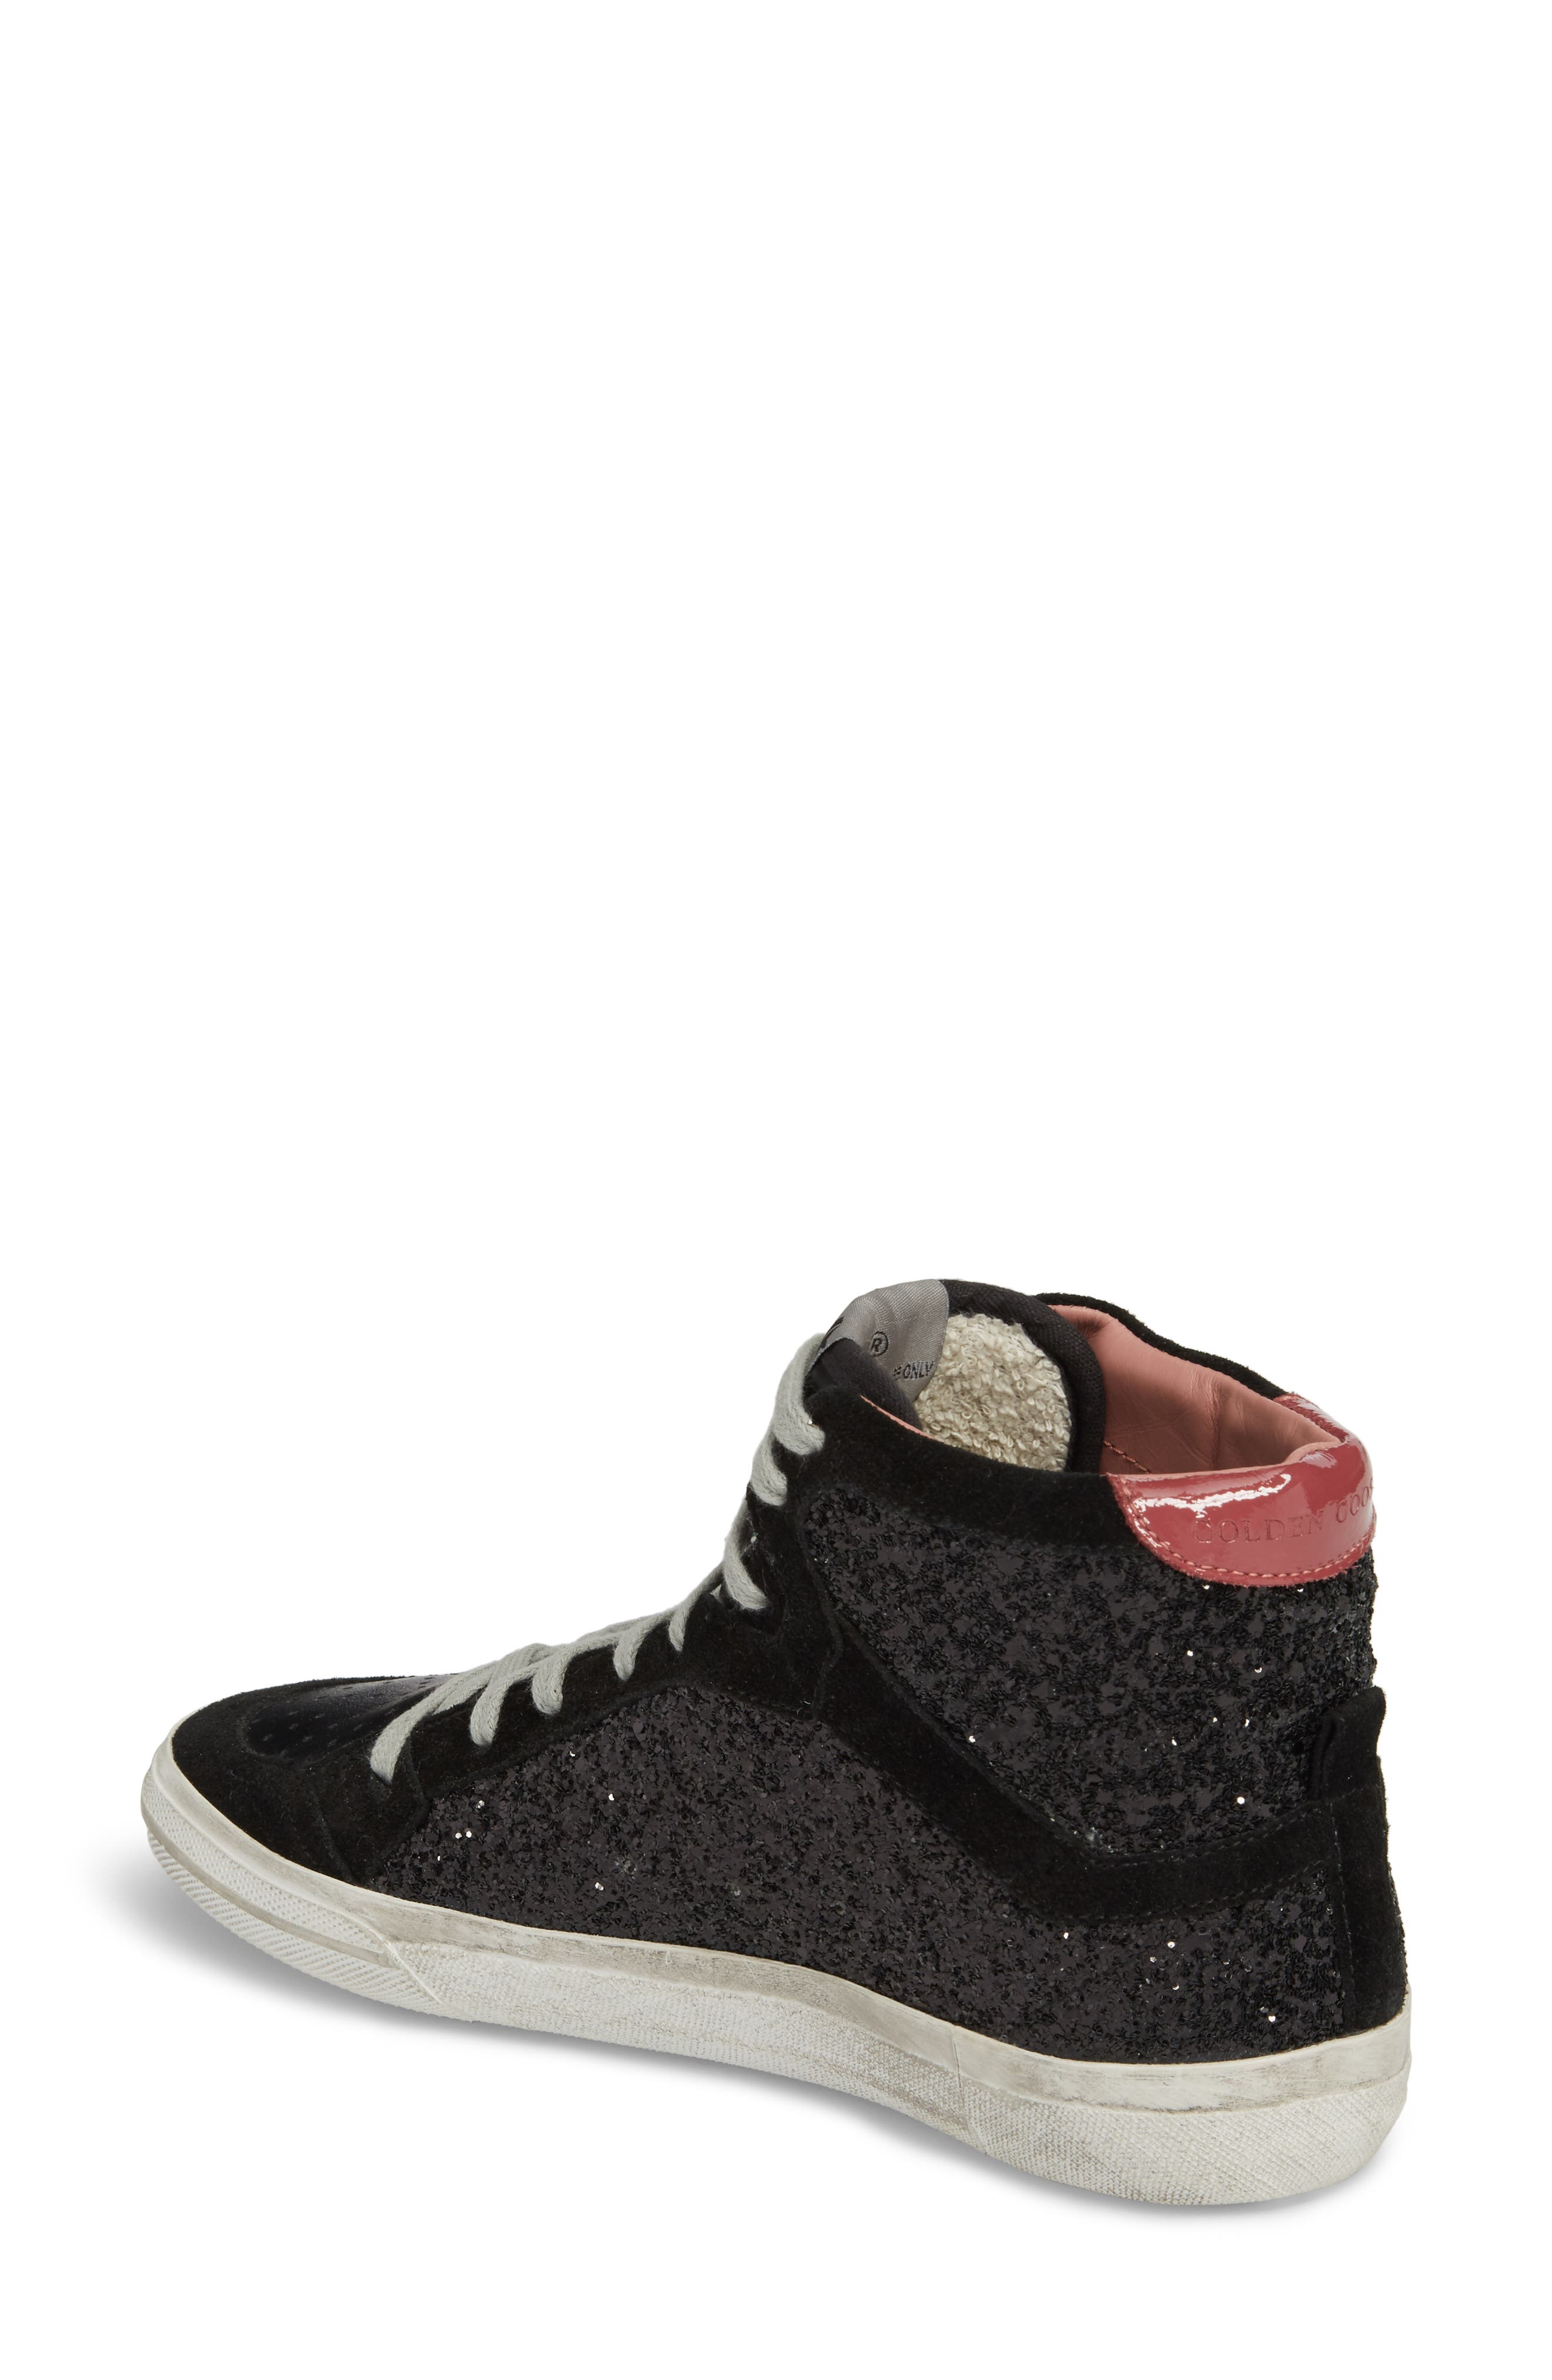 2.12 Star High Top Sneaker,                             Alternate thumbnail 2, color,                             Black